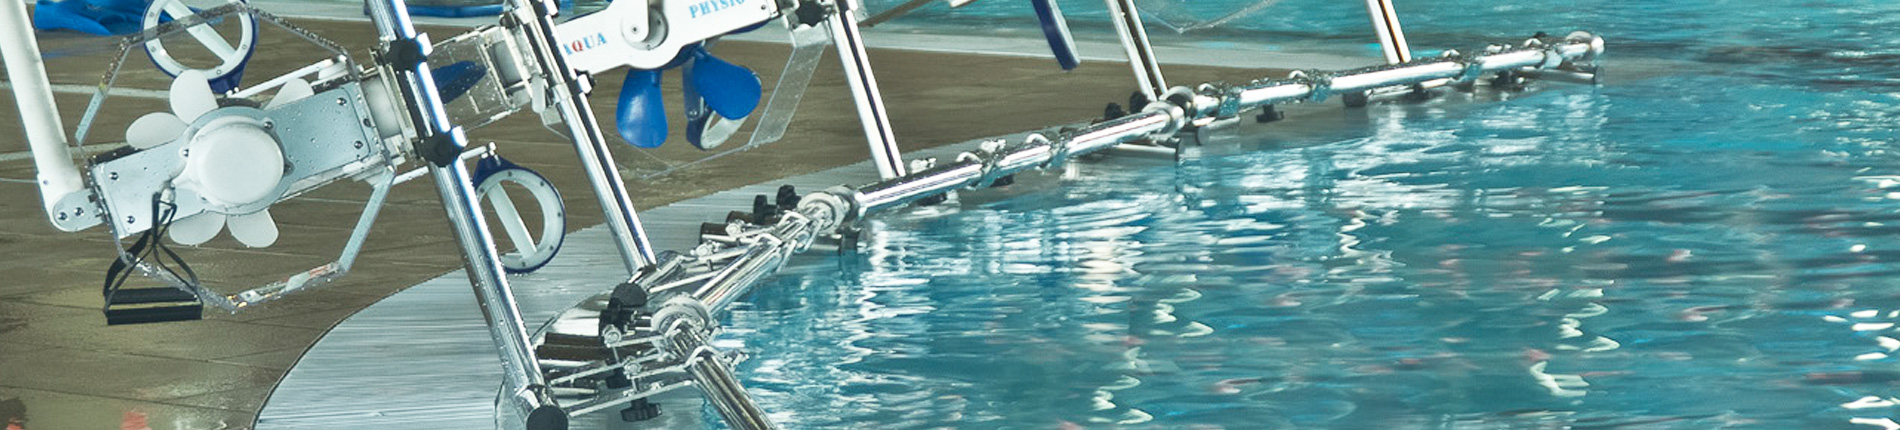 Equipment & Solutions for AQUA TRAINING